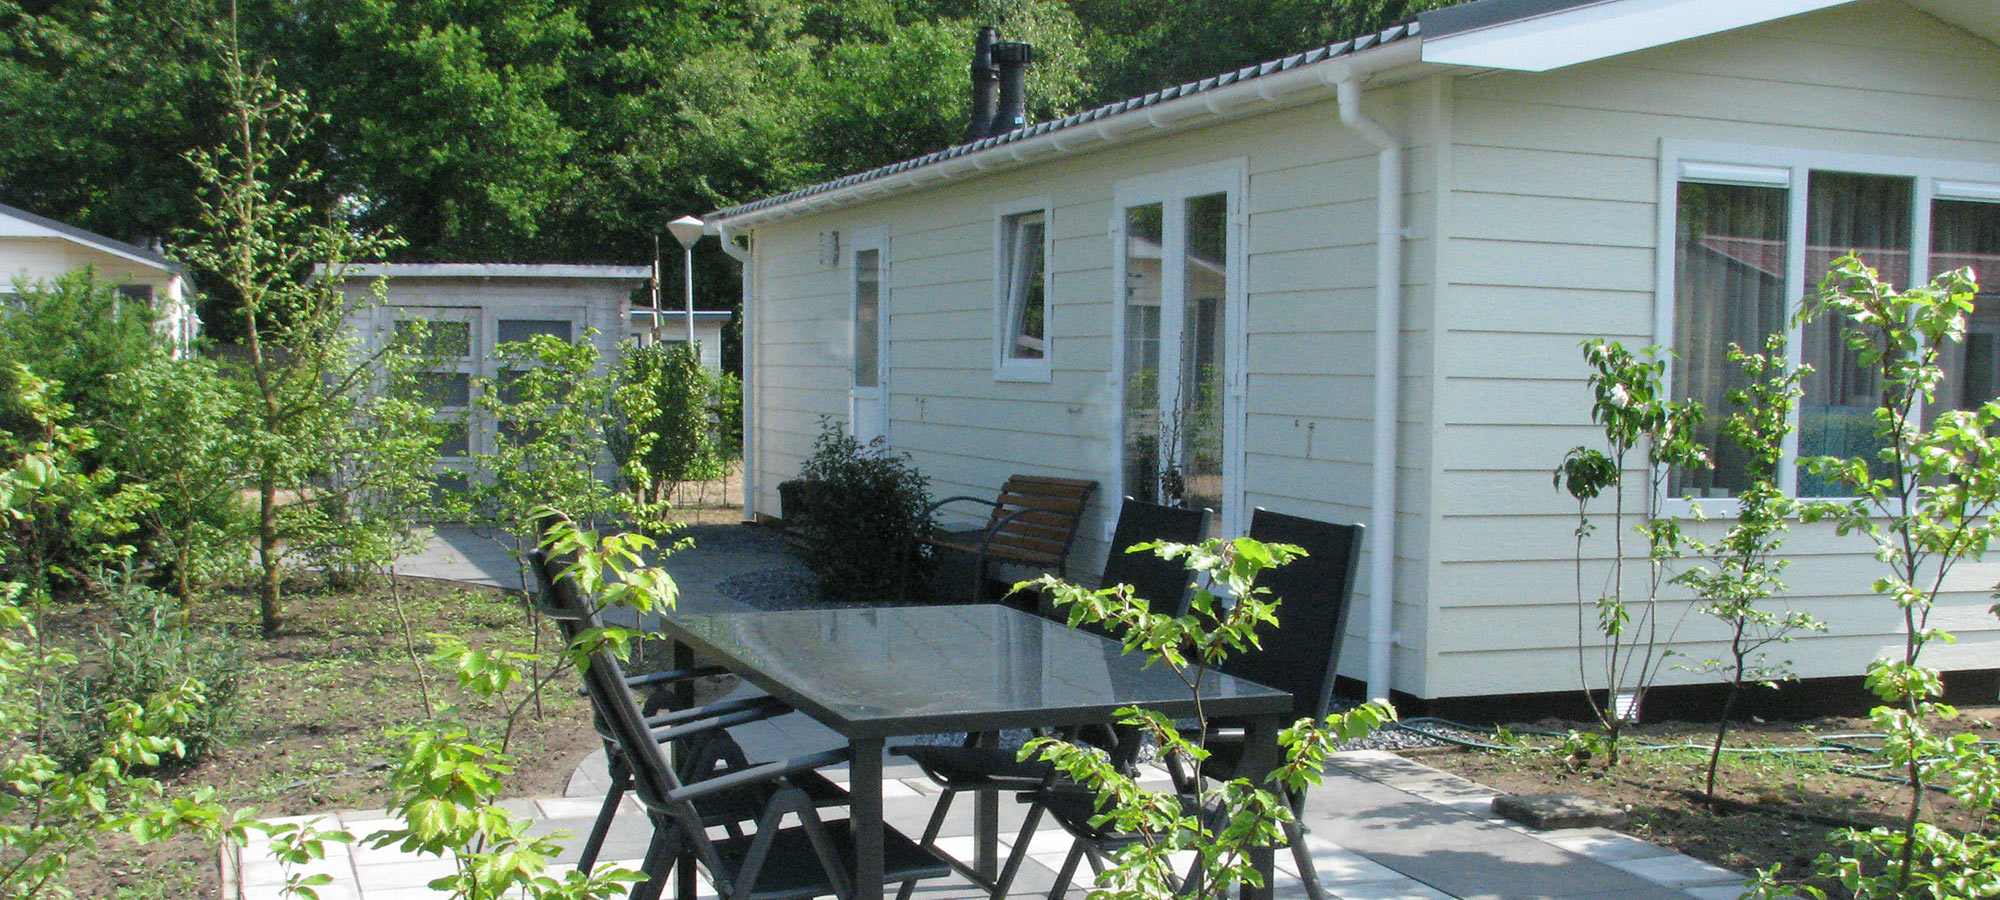 Chalet_Koolmees_03